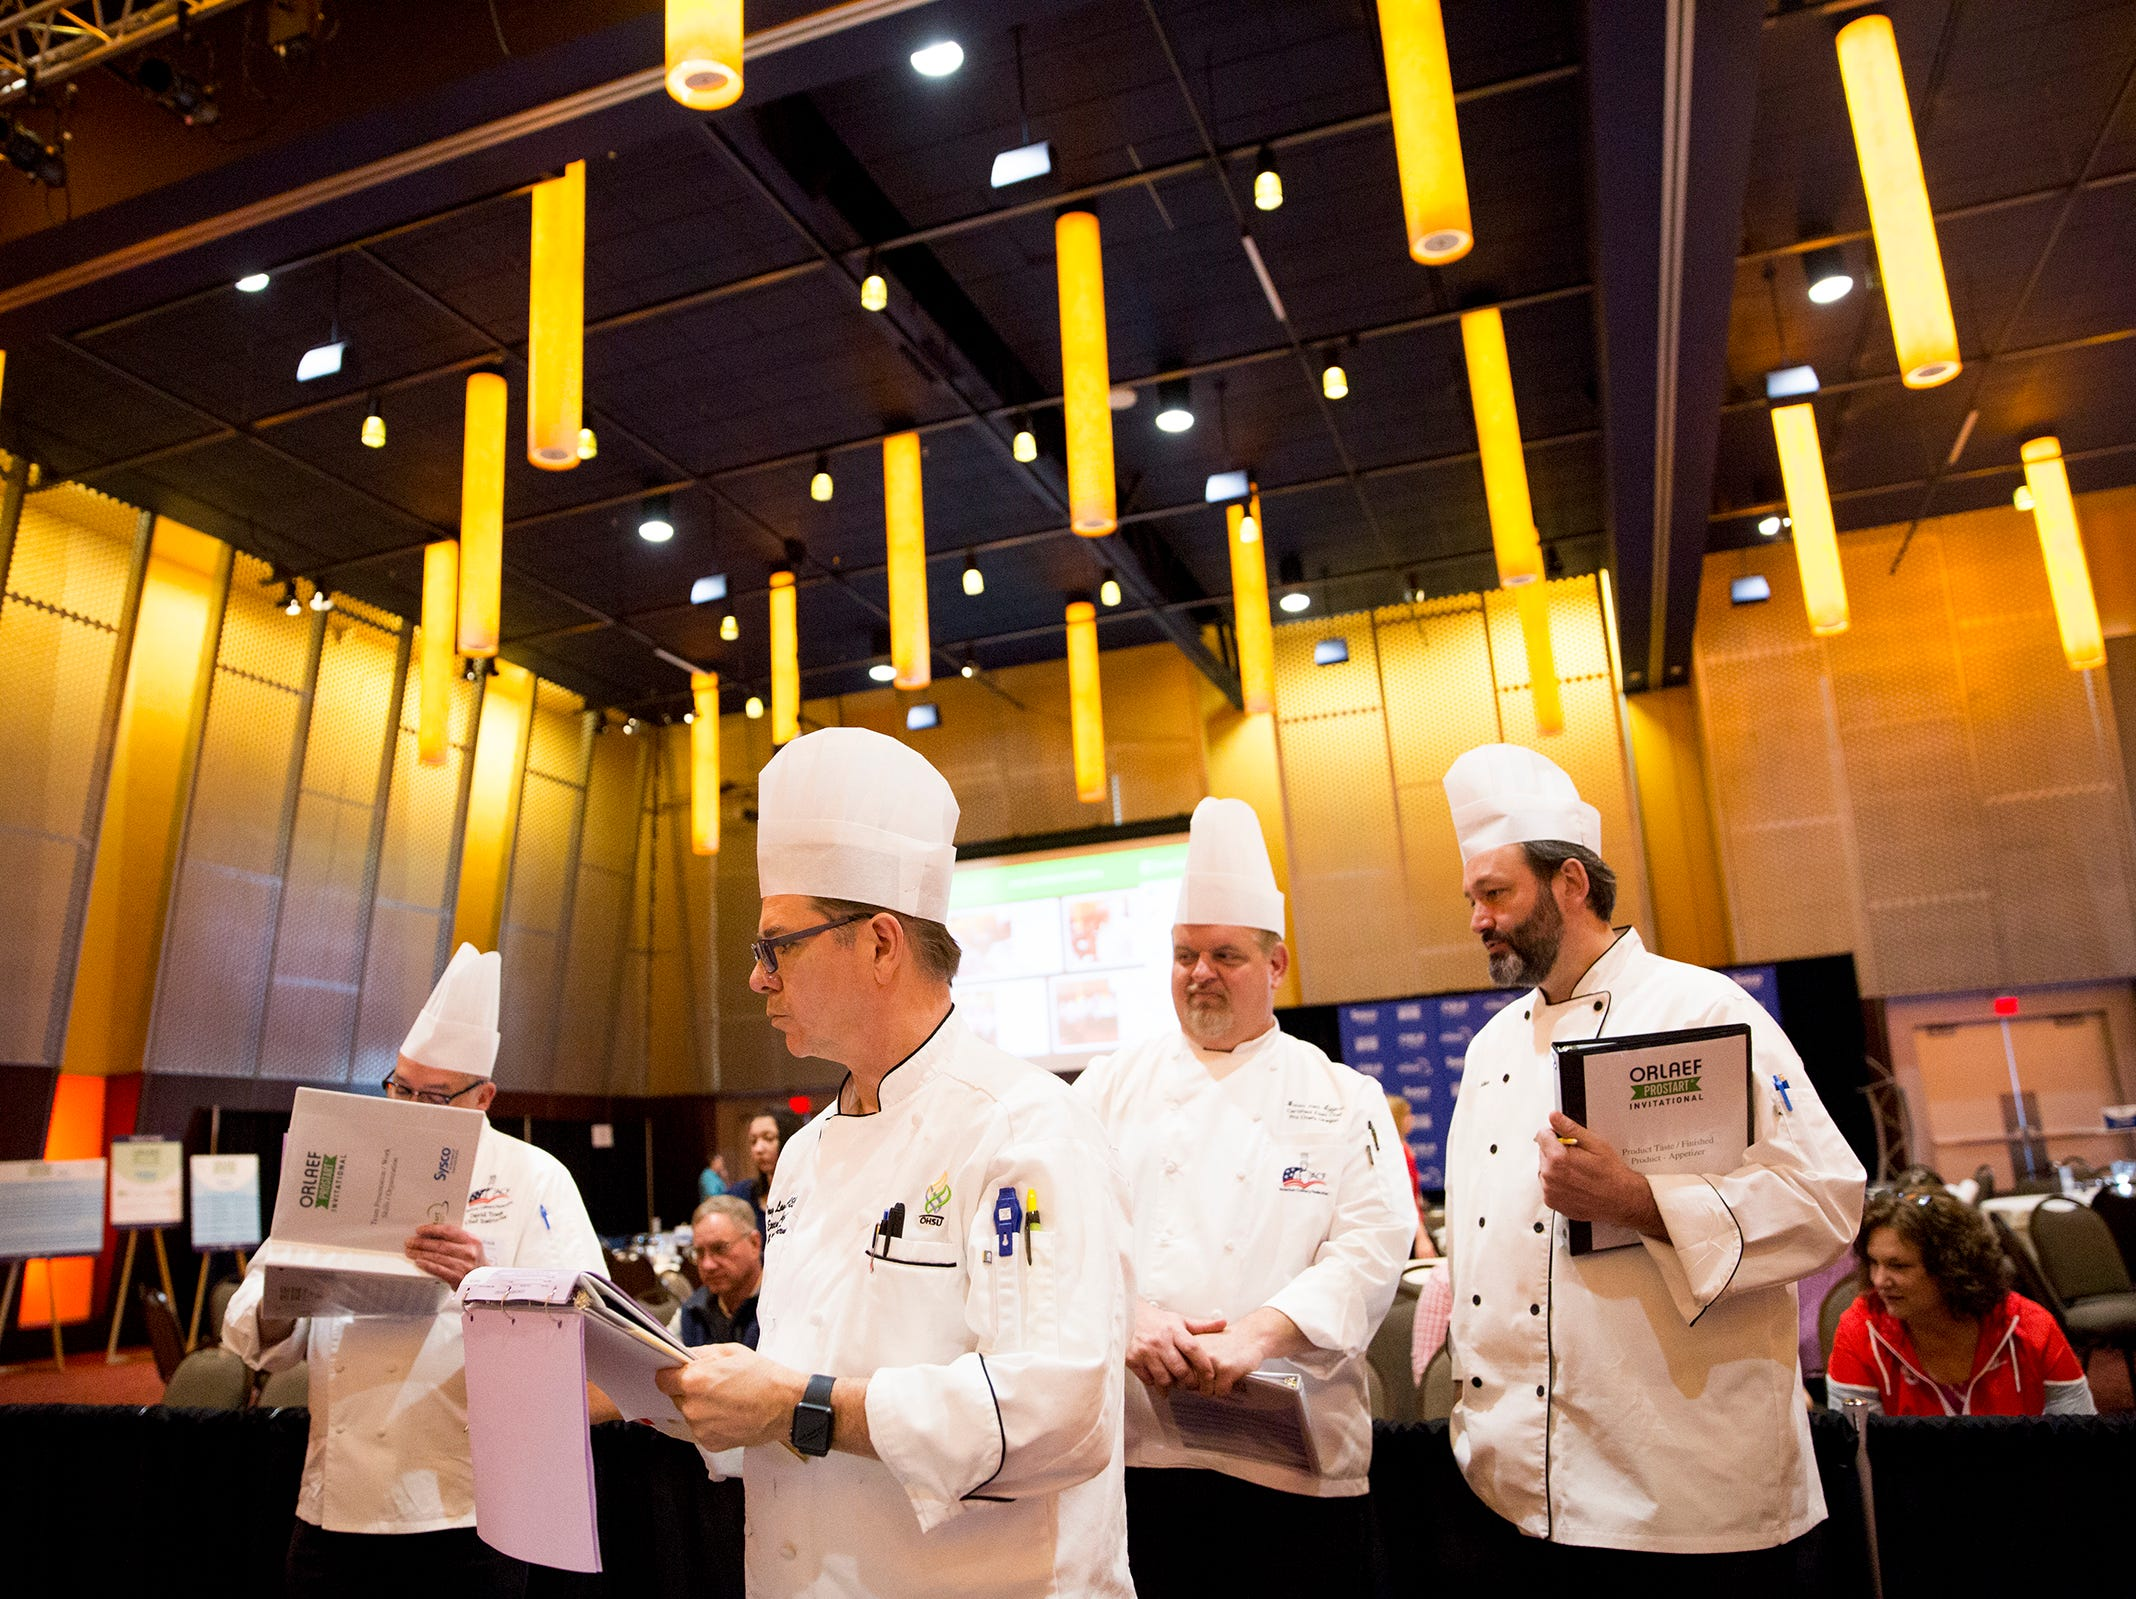 Judges take notes during the ORLAEF's ProStart Invitational, a statewide high school culinary competition, at the Salem Convention Center on March 18, 2019.